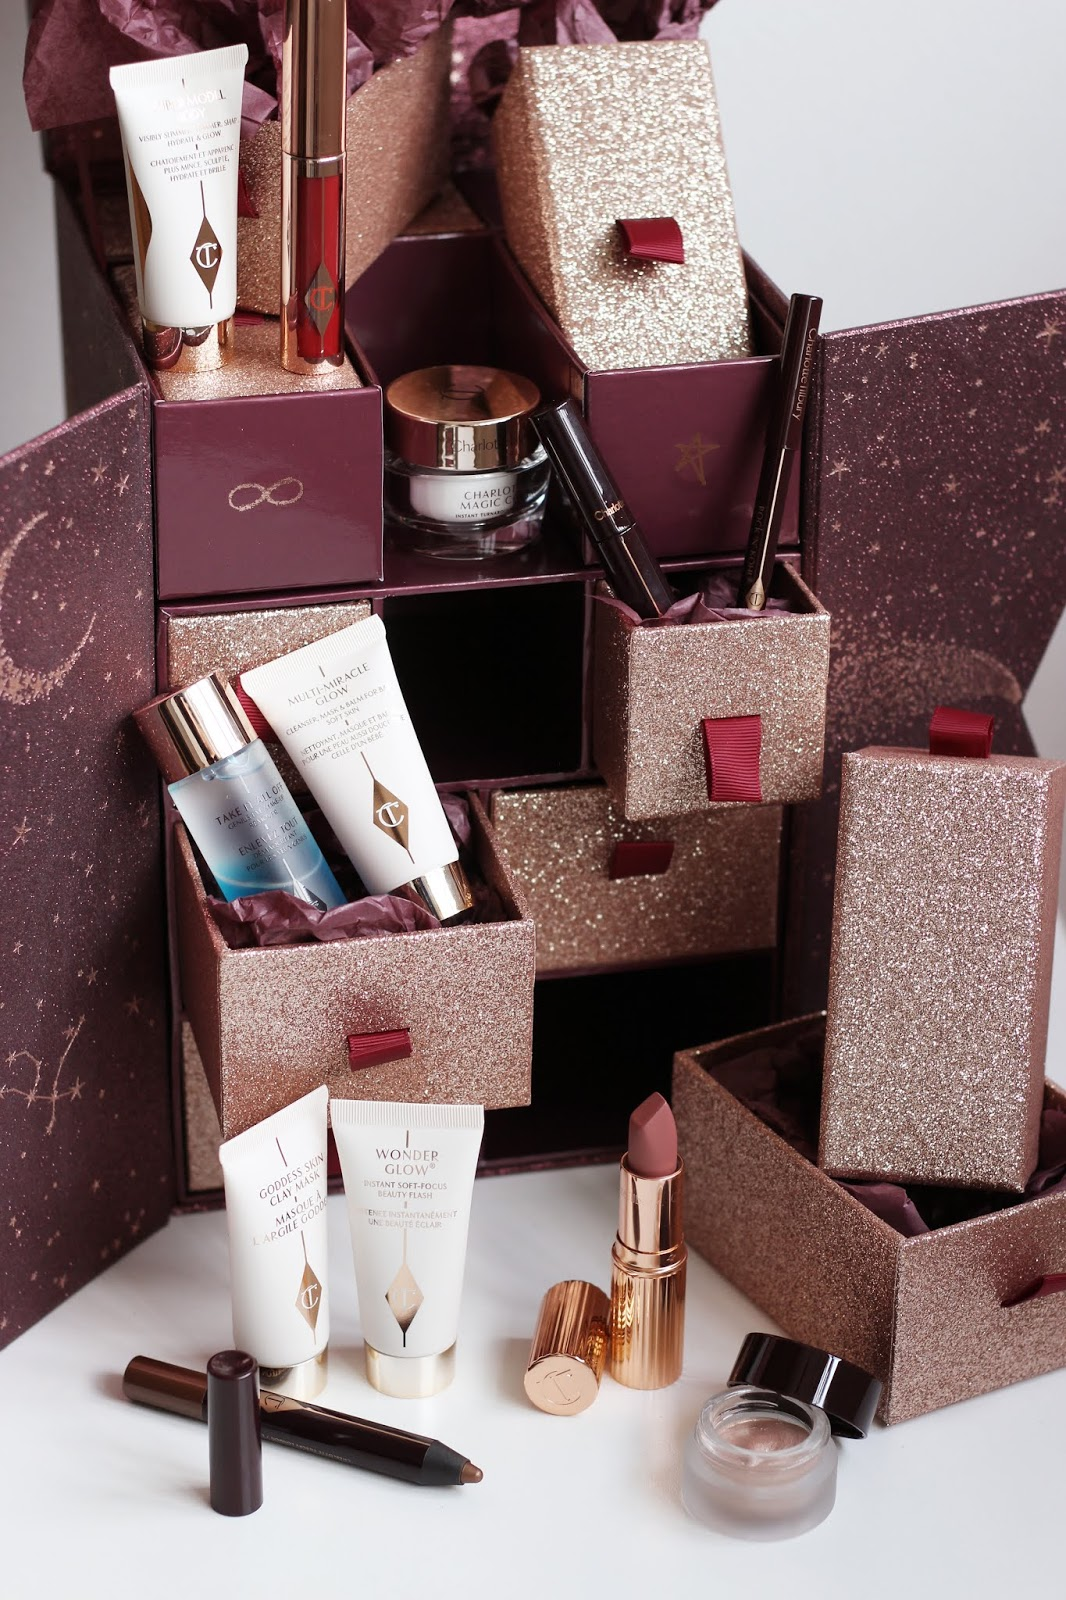 Charlotte Tilbury Beauty Universe Advent Calendar